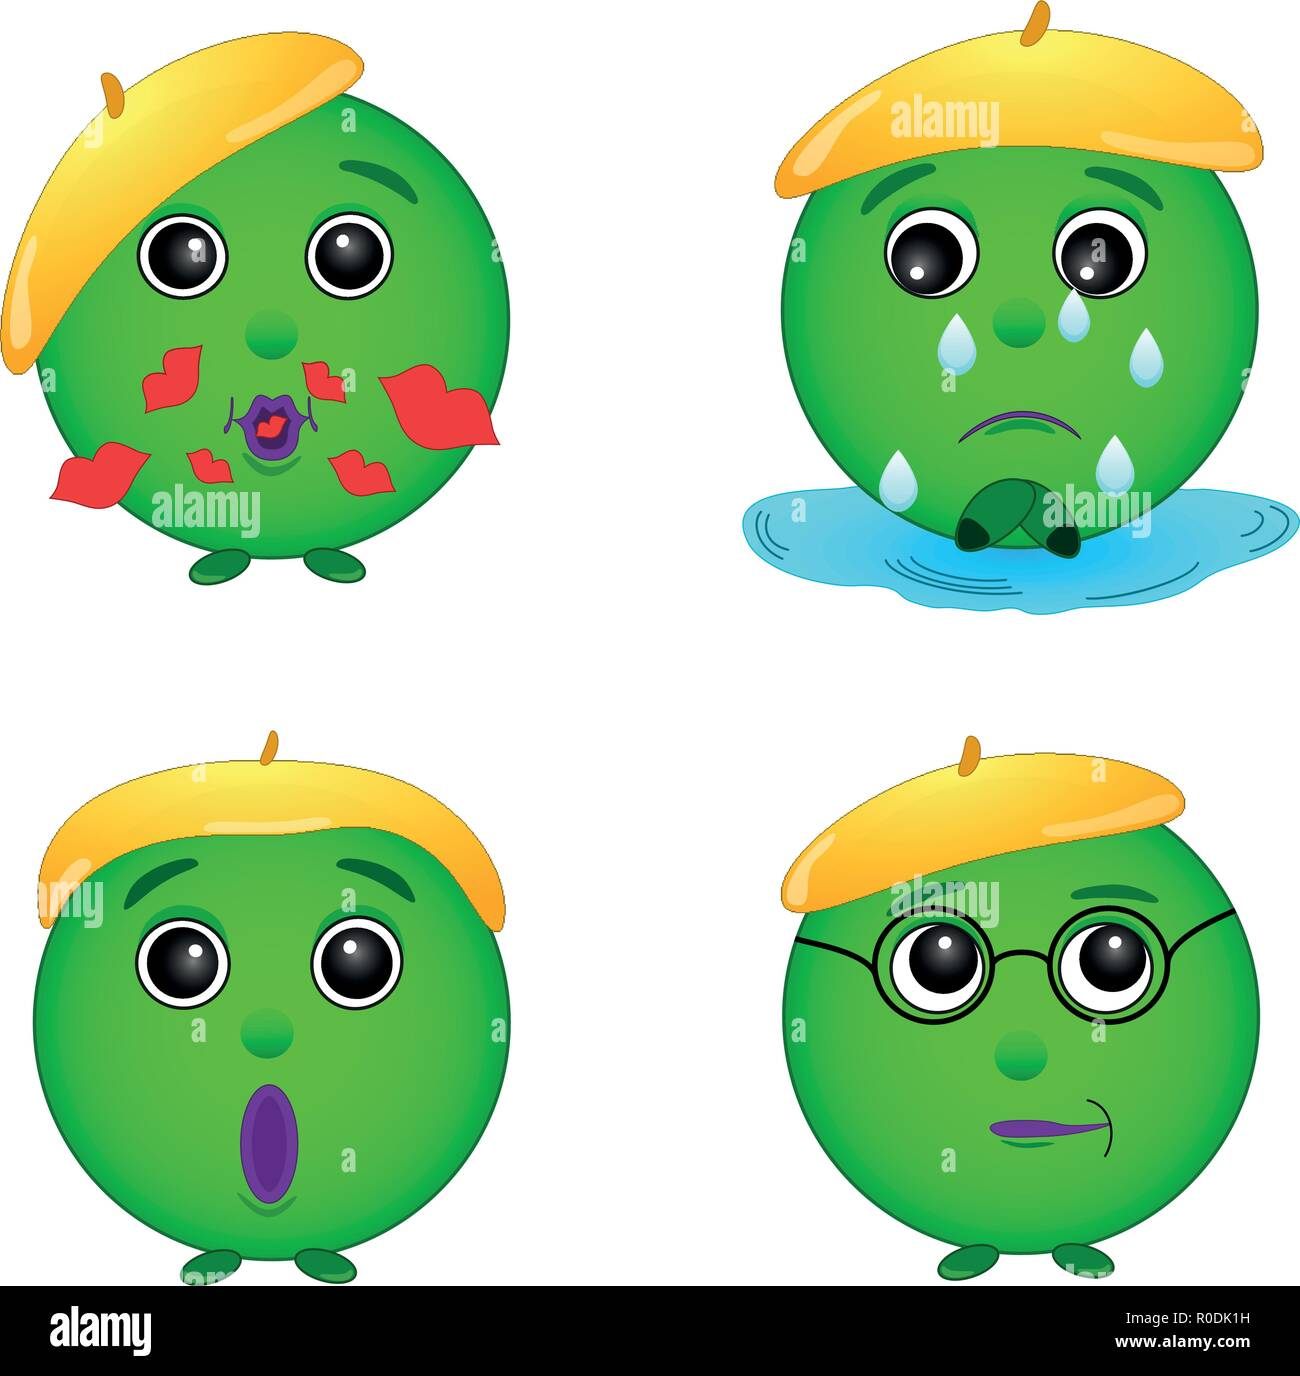 Smiley green, set. emotions , face, gingerbread man, green man, illustration, vector - Stock Image